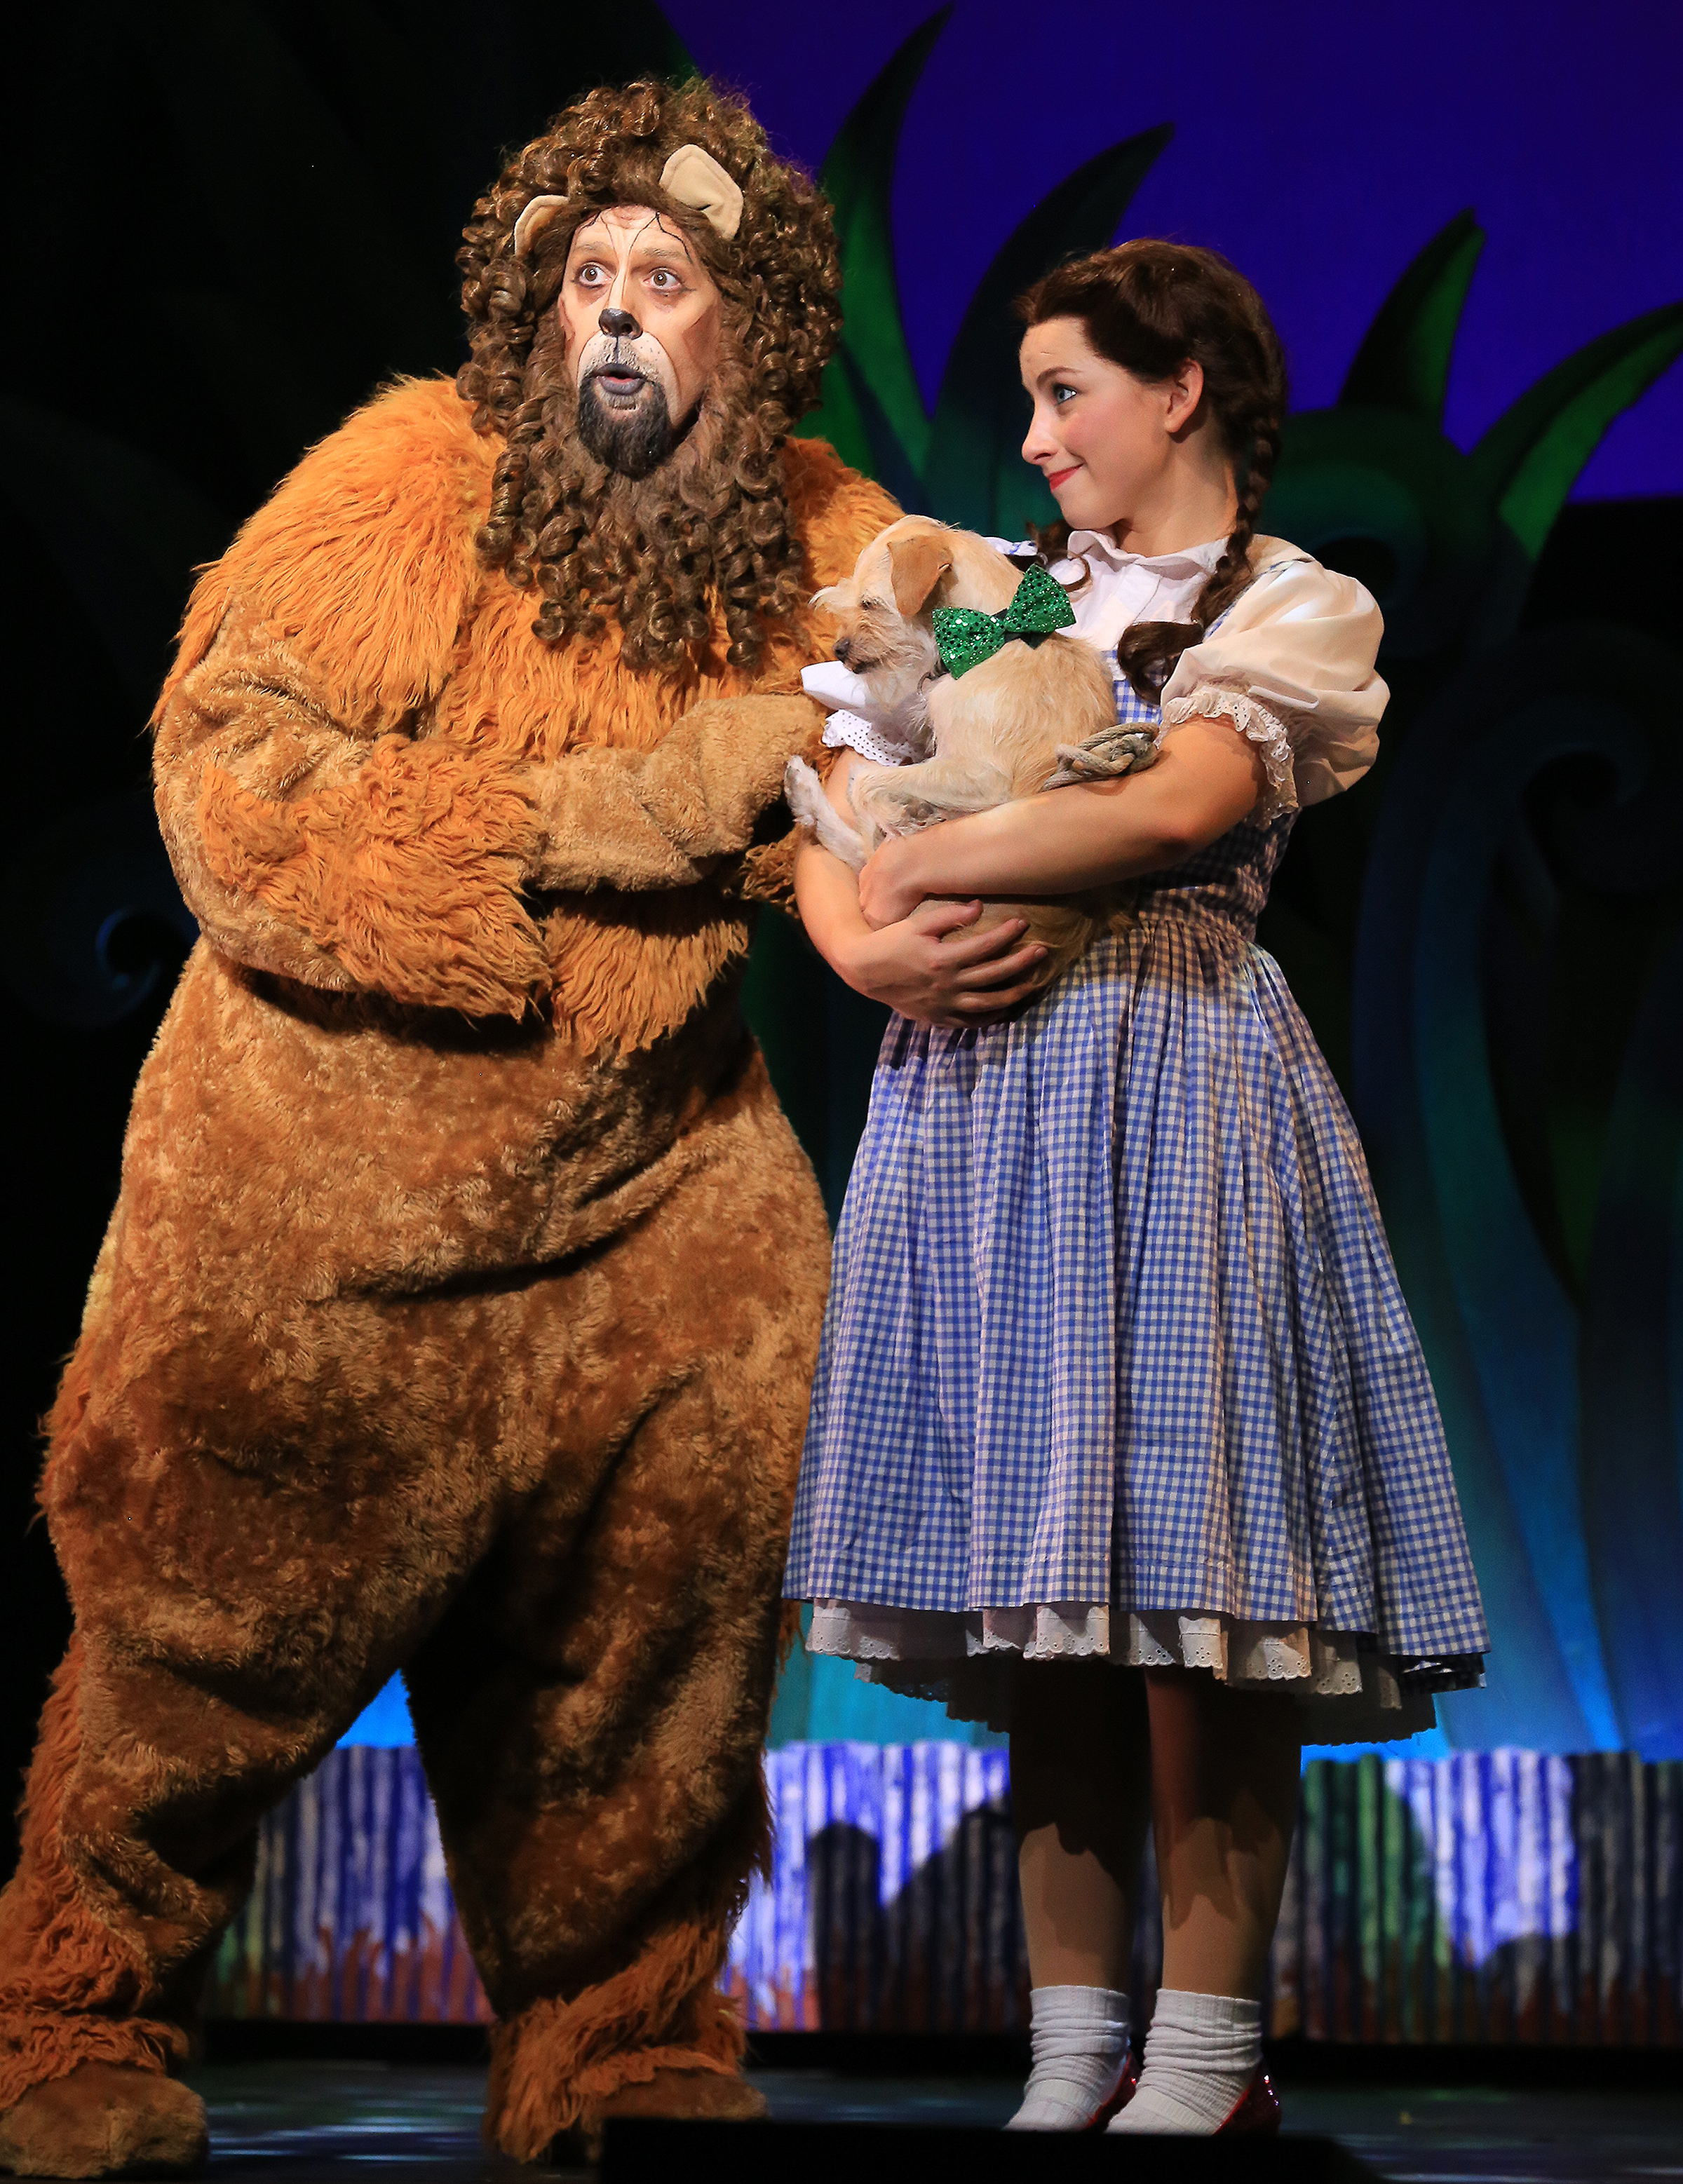 The Wizard of Oz - Lion and Dorothy